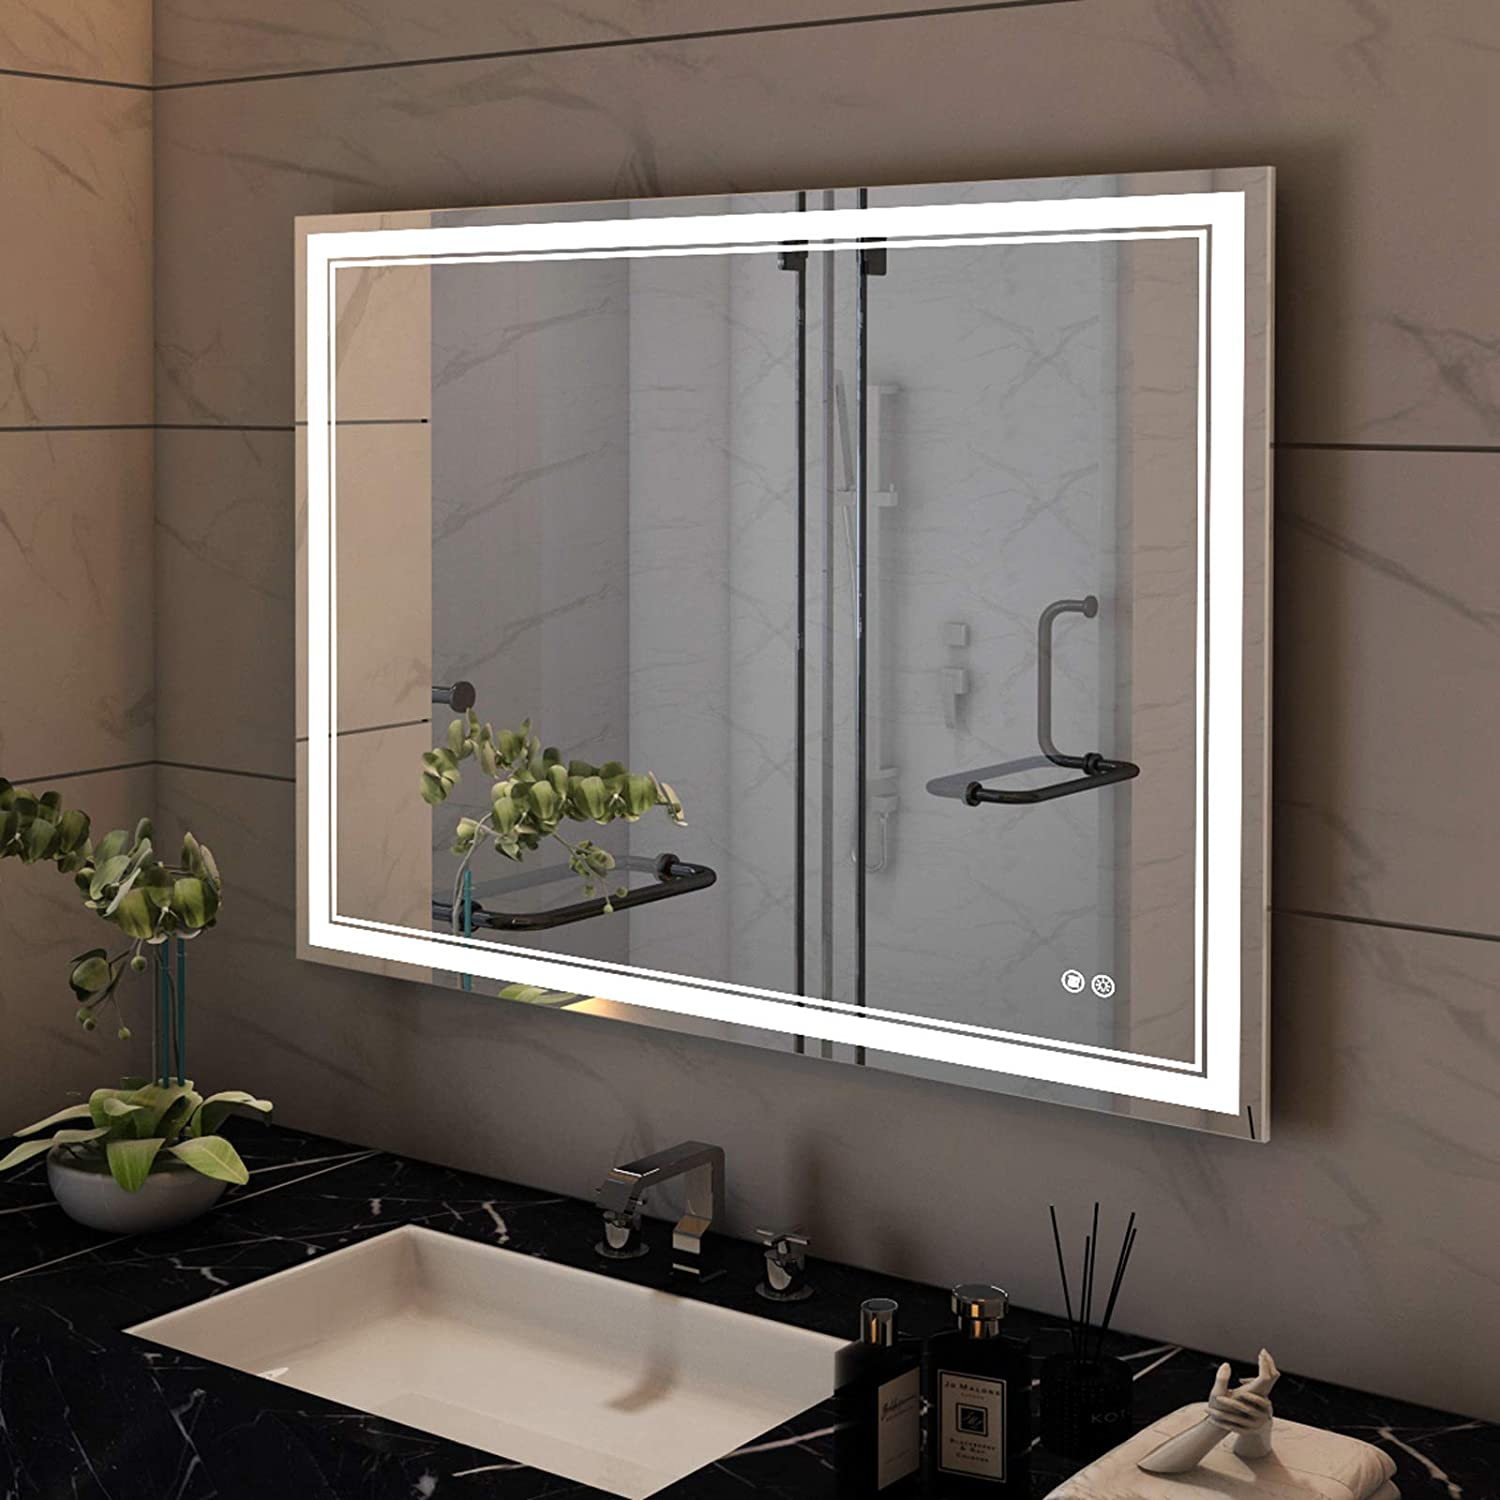 Okpal 40 x 32 Inch LED Bathroom Vanity Mirror, Large Wall Mounted Anti-Fog Dimmable Makeup Mirror with Lights, Memory Touch Switch, White/Neutral/Warm Light, Horizontal/Vertical